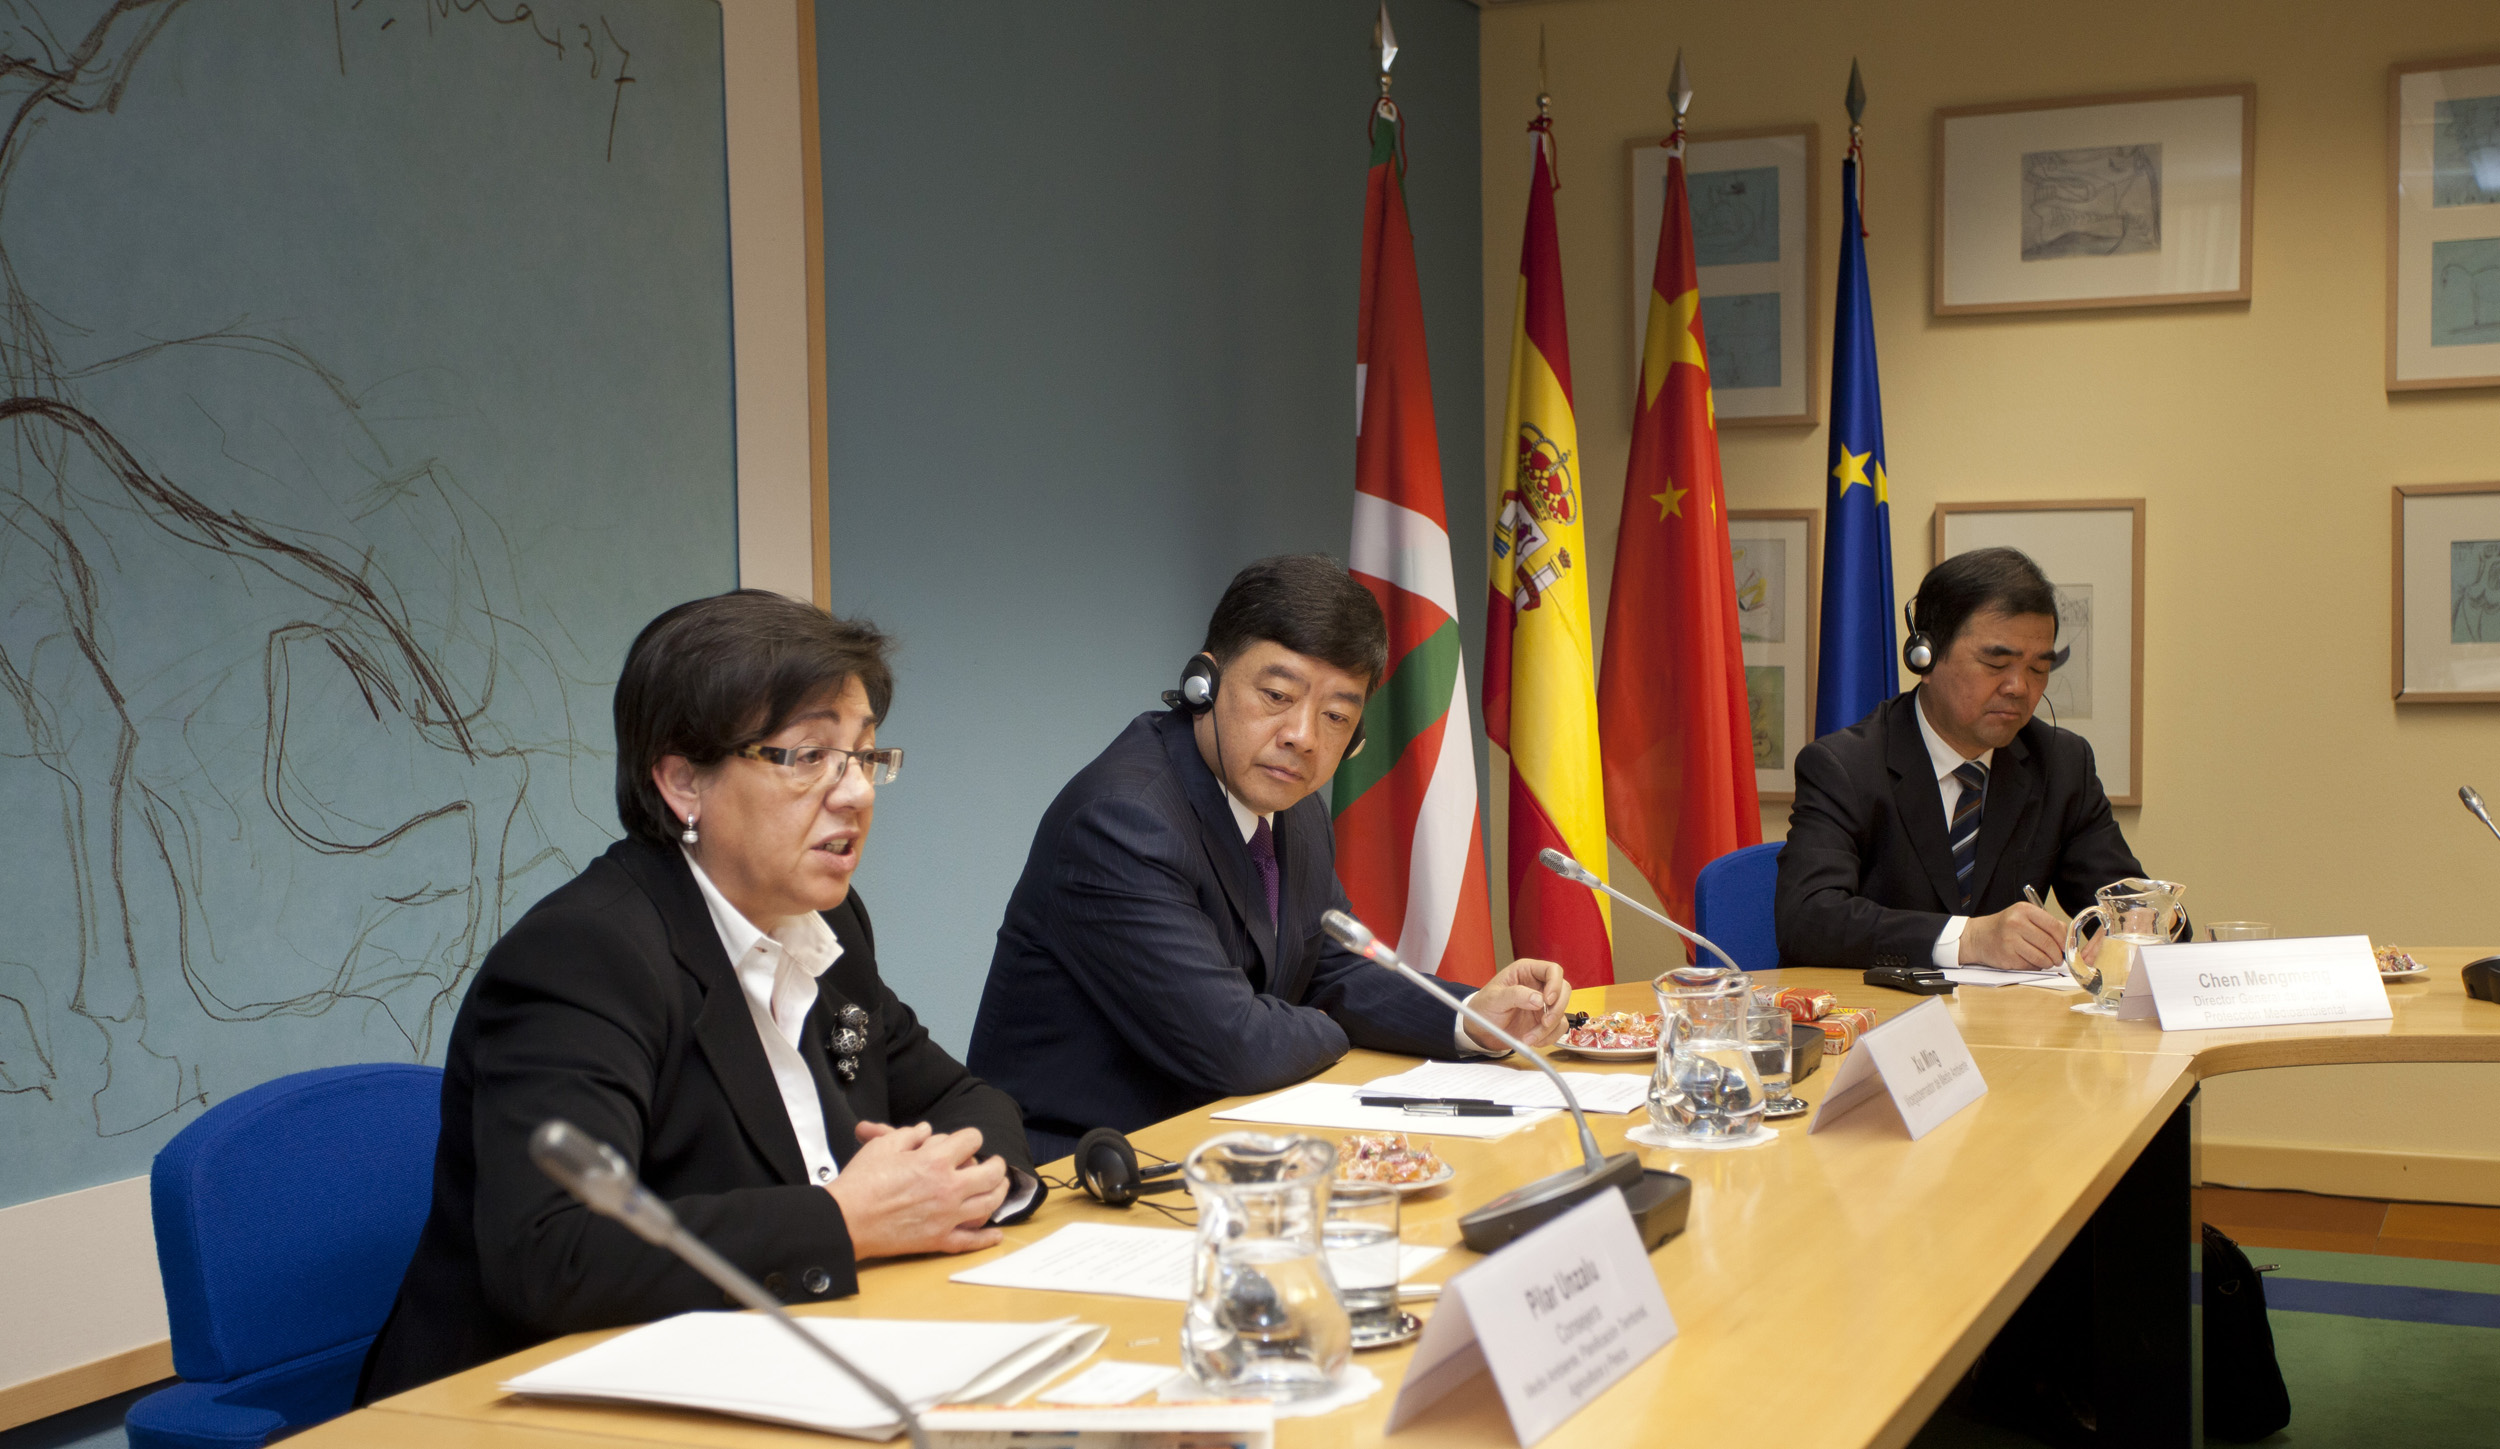 The Basque Government signs an agreement with the Chinese province of Jiangsu